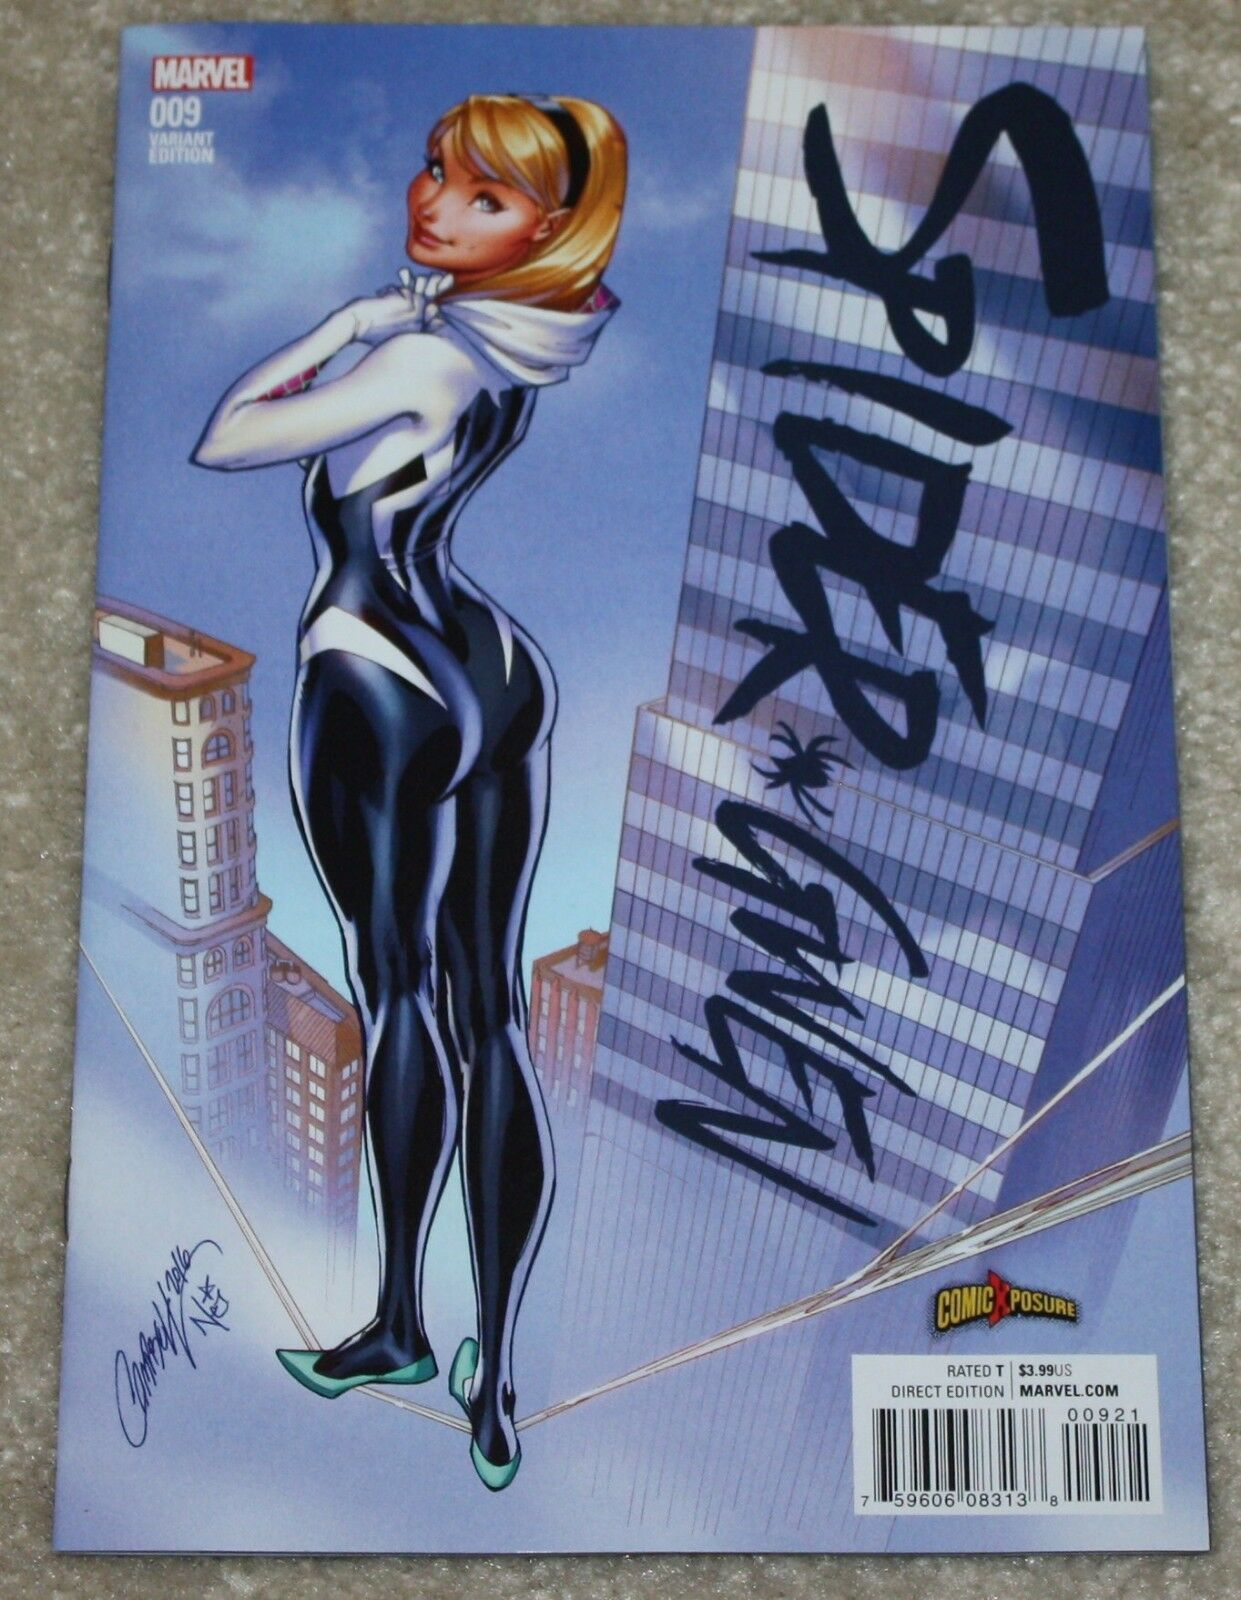 SPIDER-GWEN #9 J. SCOTT CAMPBELL COLOR EXCLUSIVE VARIANT